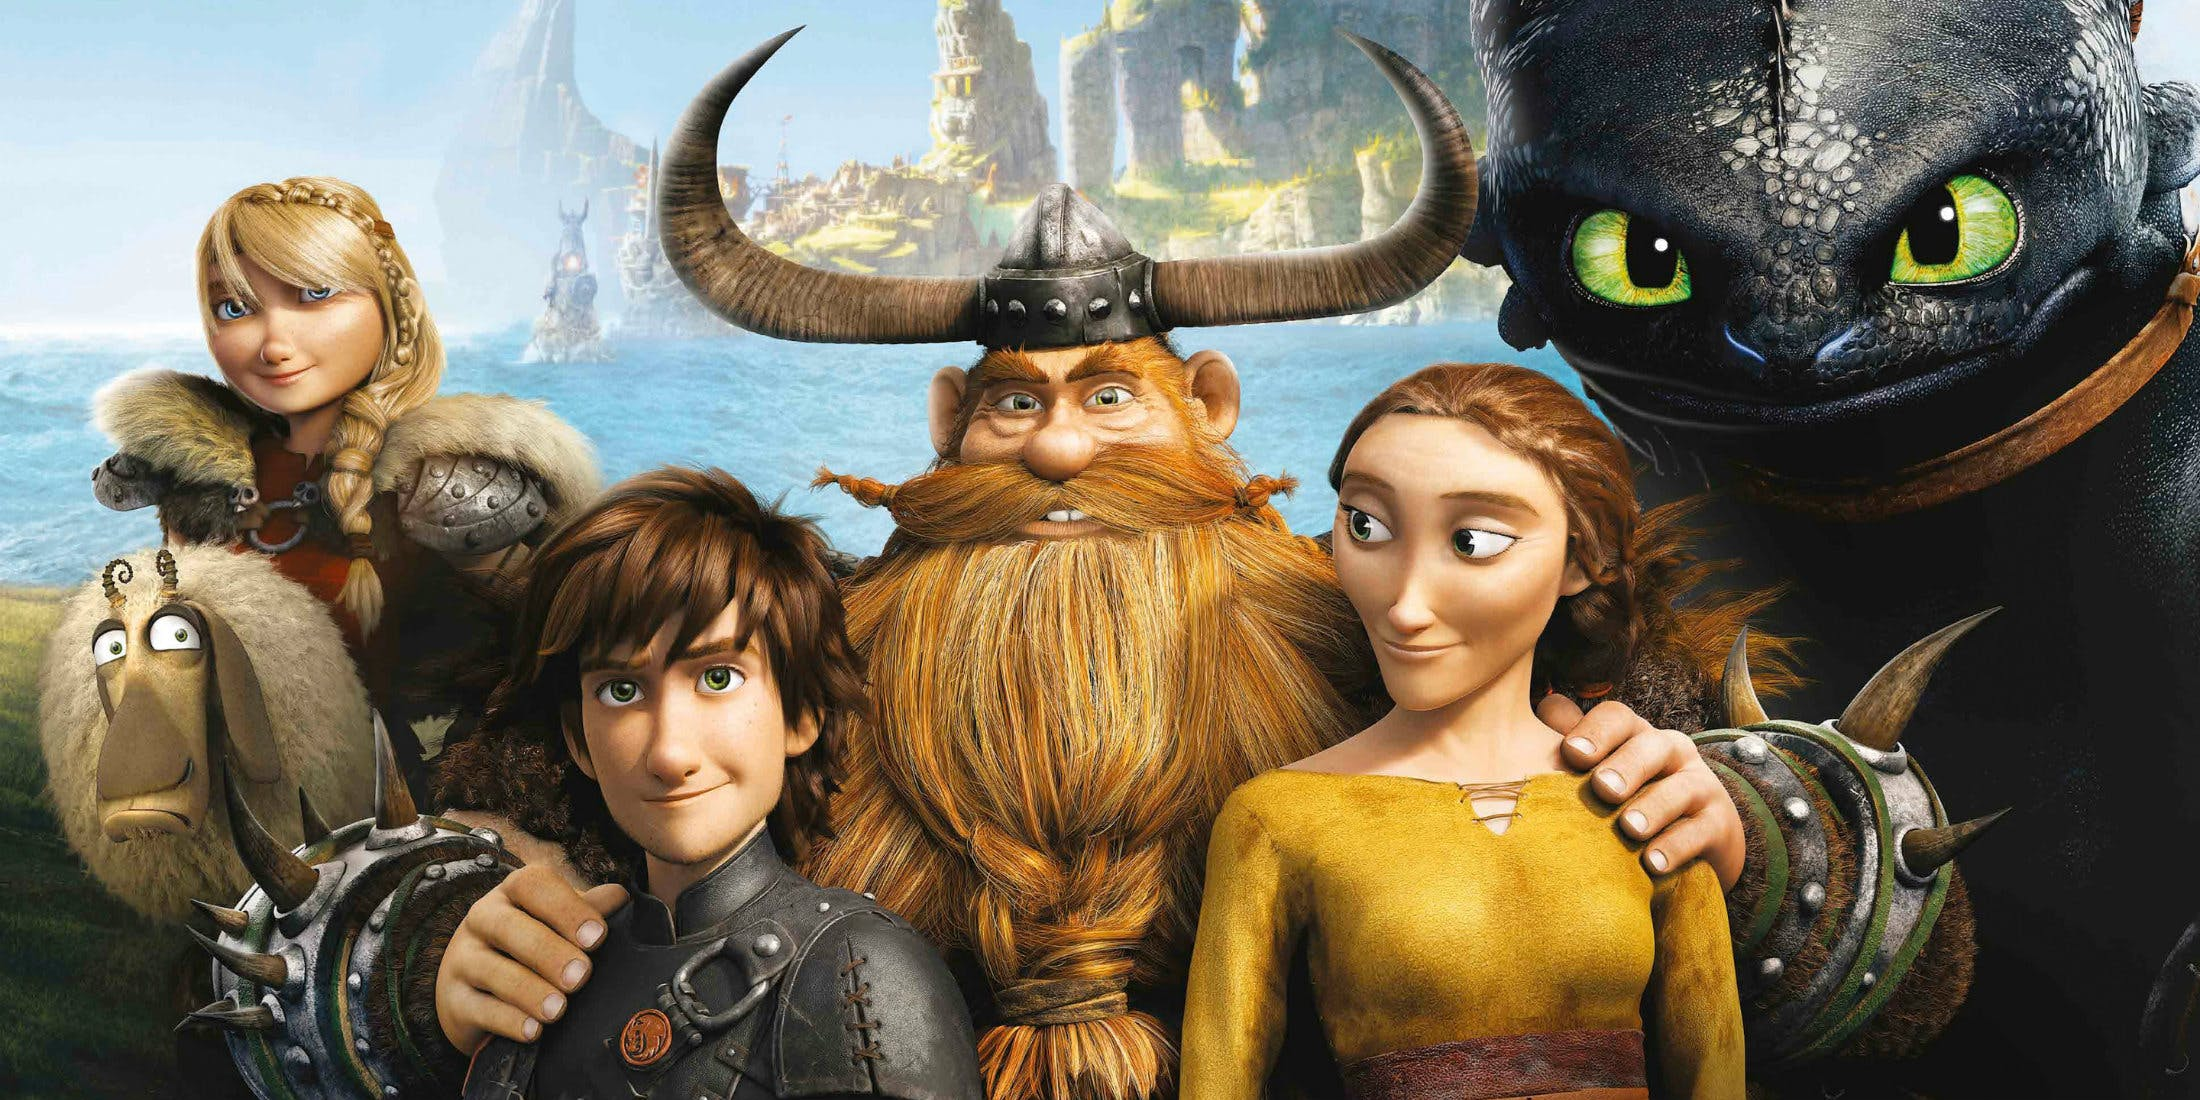 How to train your dragon the hidden world will conclude the entire how to train your dragon the hidden world will conclude the entire franchise ccuart Image collections